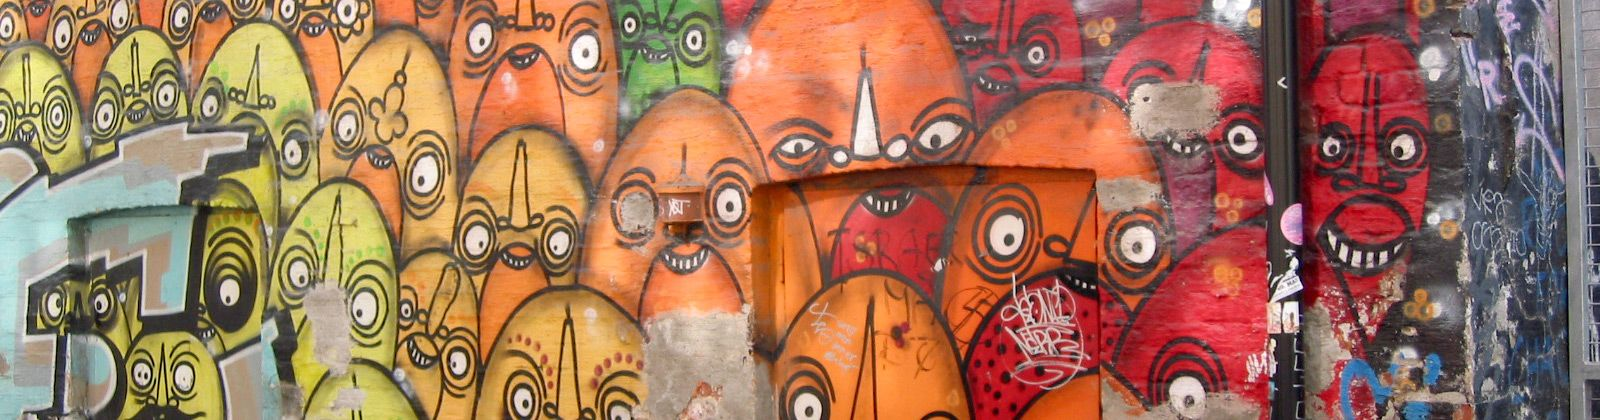 Mural of cartoon faces